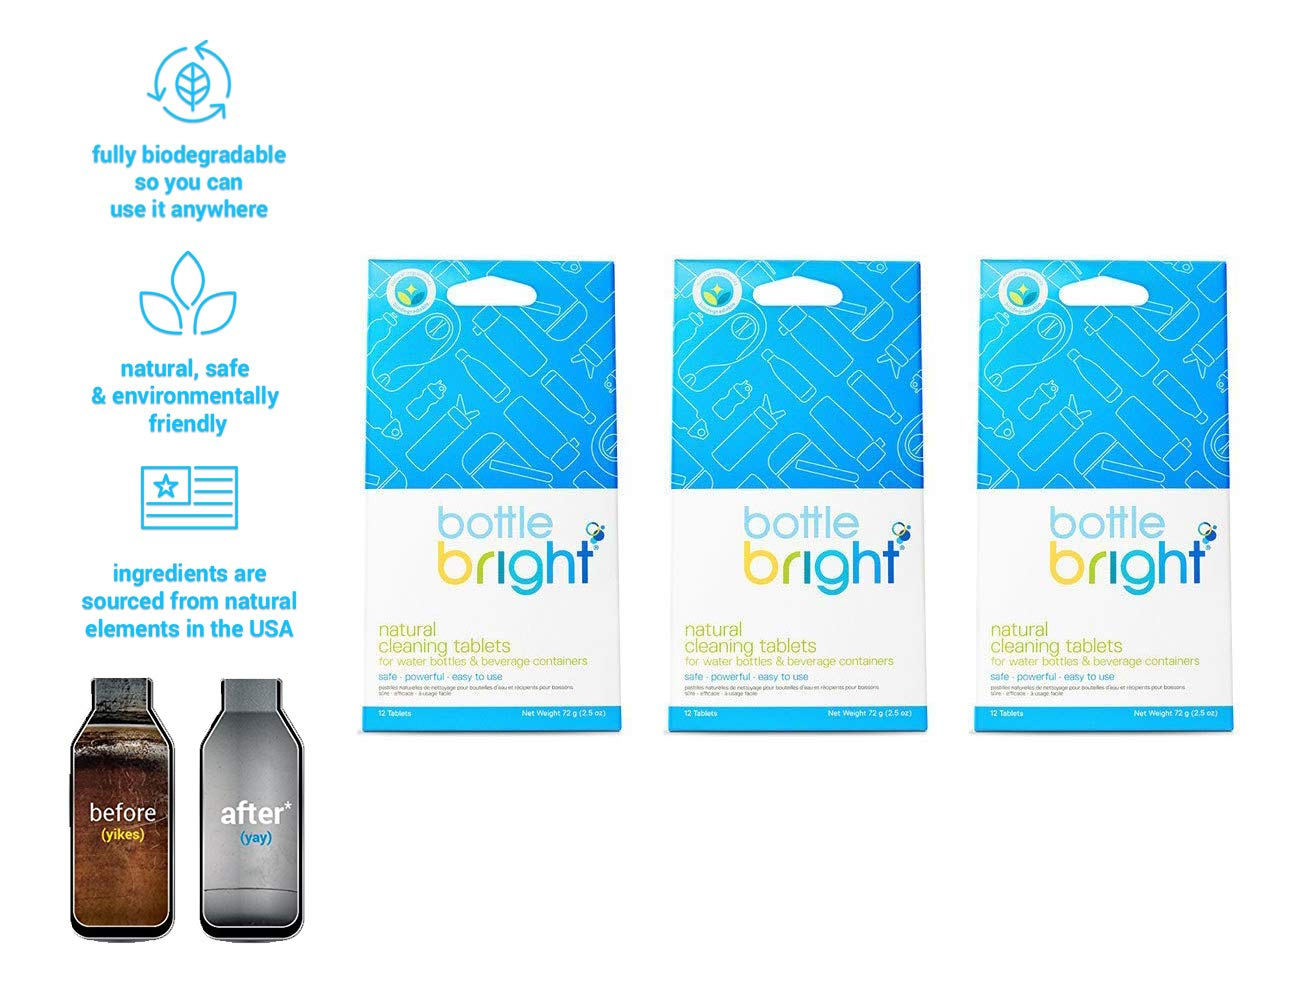 Bottle Bright 3 Pack (36 Tablets) - All Natural, Biodegradable, Chlorine & Odor Free Water Bottle & Hydration Pack Cleaning Tablets by BOTTLE BRIGHT (Image #1)